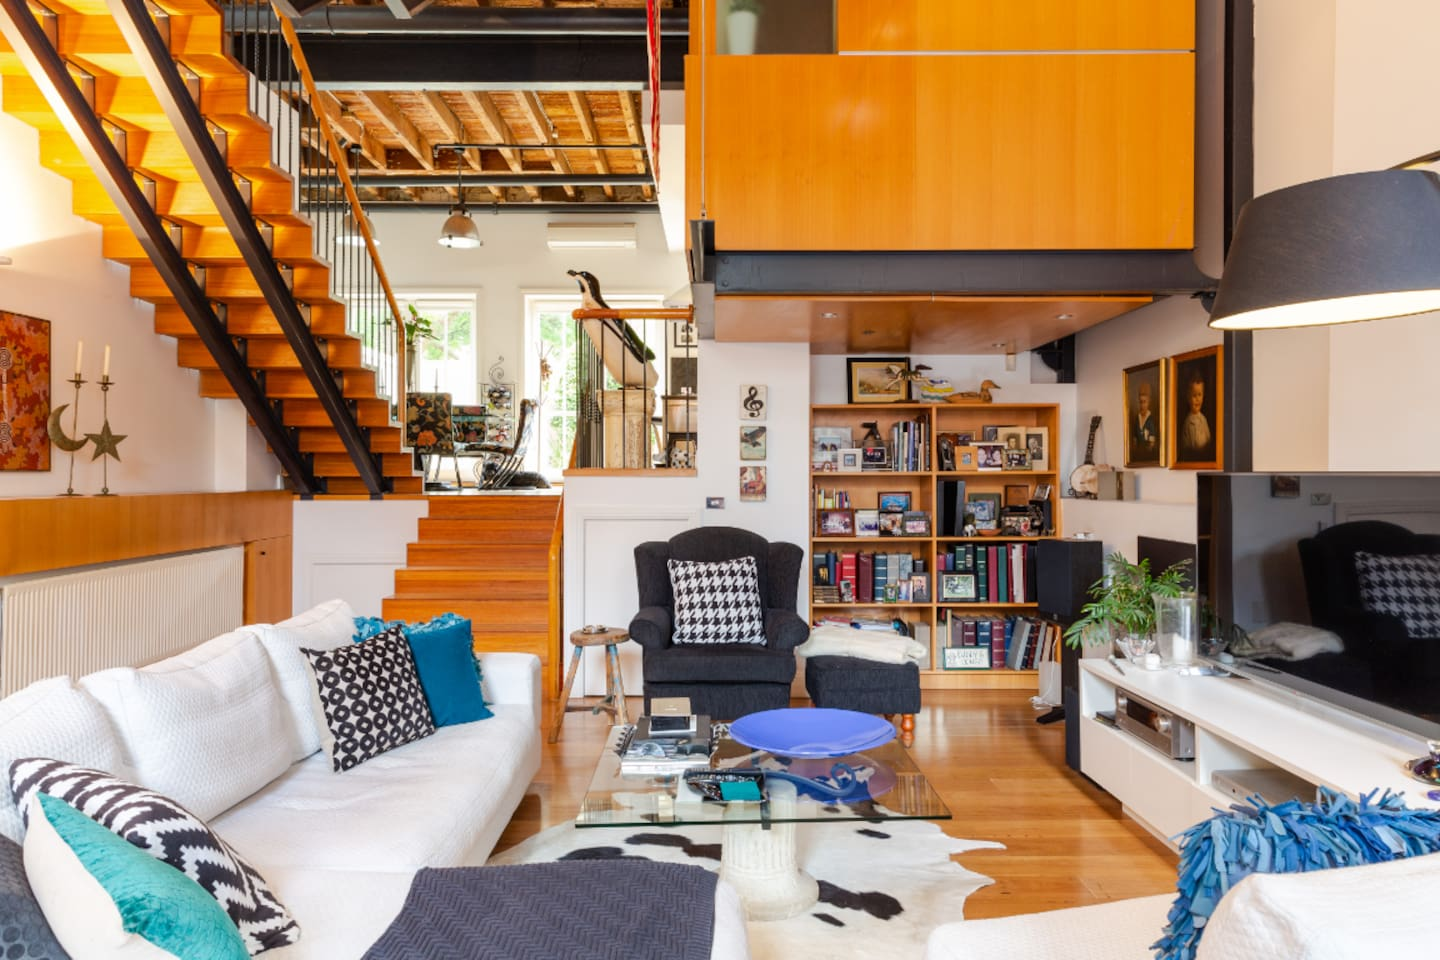 One-of-a-kind home in a landmark factory conversion